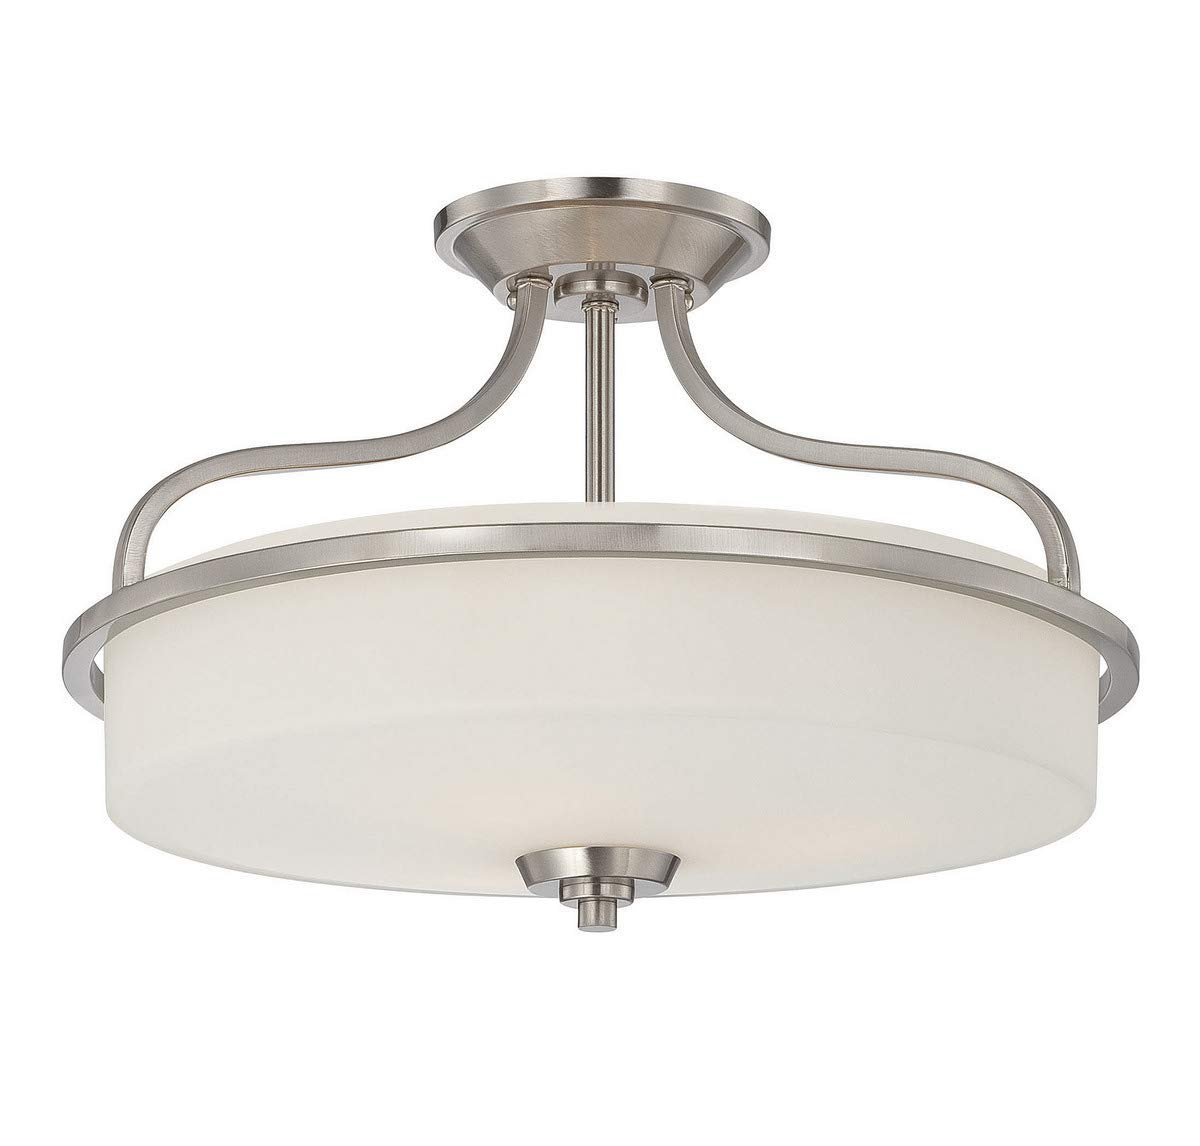 Savoy House 6-6224-3-13 Three Light Semi-Flush